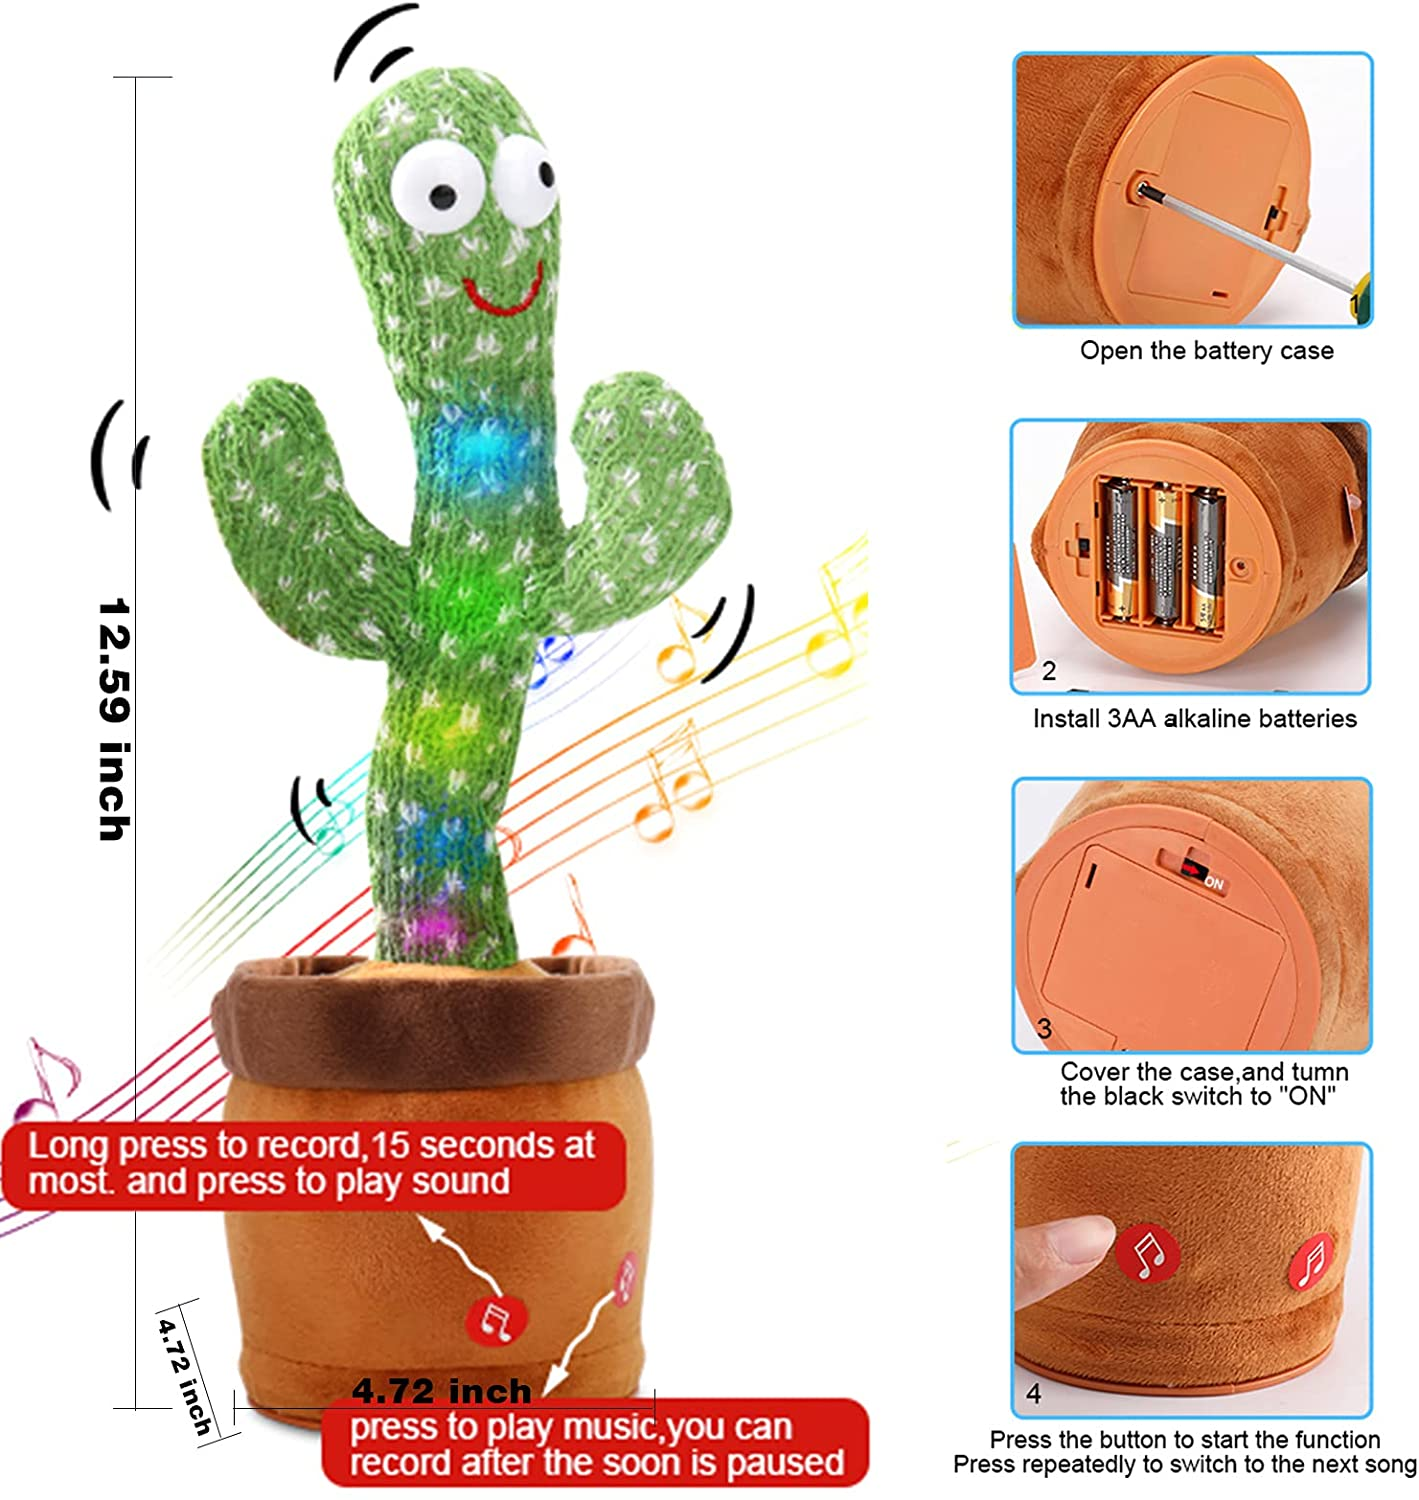 Dancing Cactus with RECORDING, Plush Funny Electronic Shaking Cactus Singing Dancing Cactus Twisting Cactus Cute Plush Toy Education Toy Plush Toy with upto 10 Songs for Home Decoration and Children Playing Birthday Gift Kids Toy